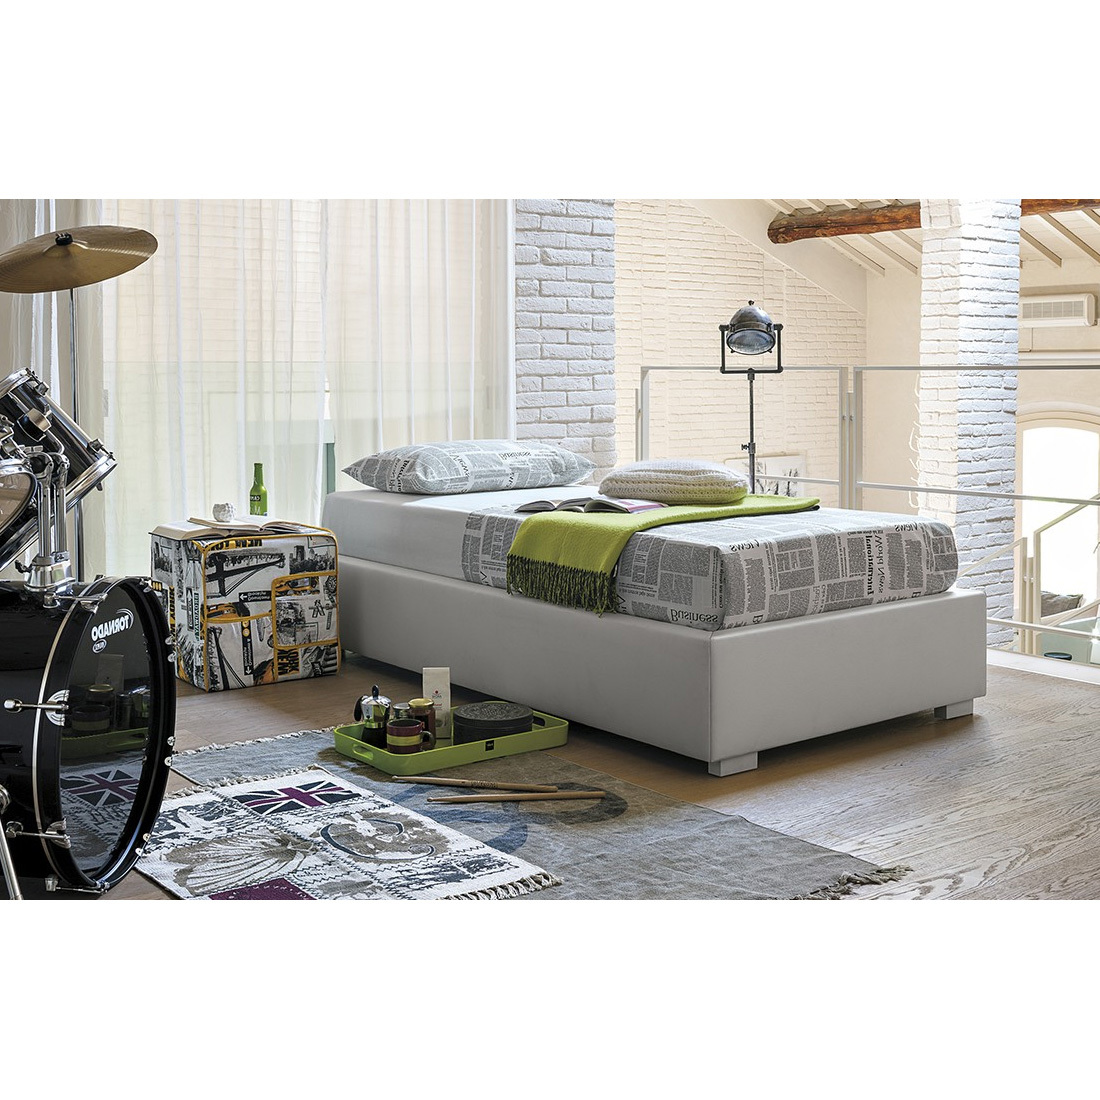 Photos 2: Target Point Single padded bed SD451 - SOMMIER